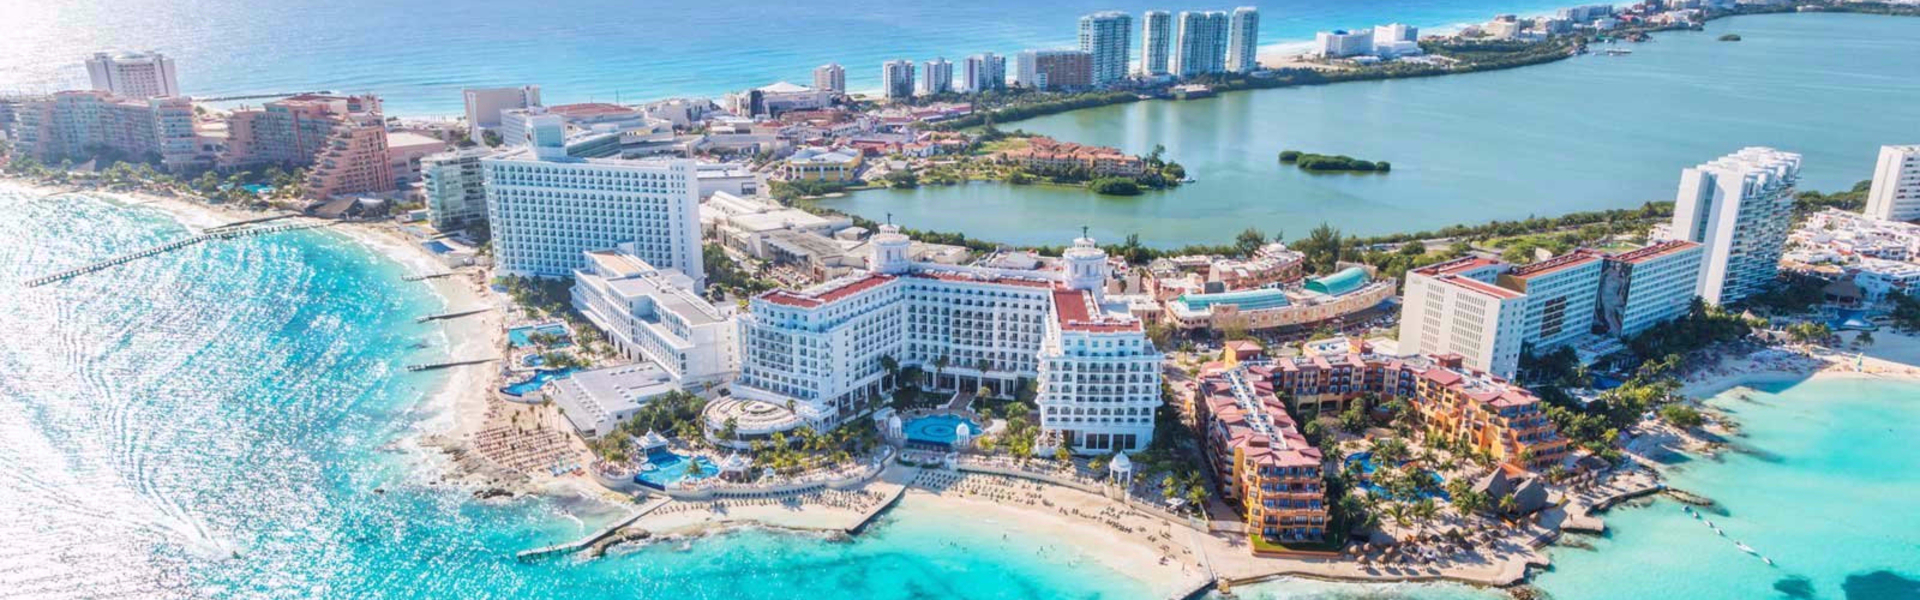 Header cancun hotel zone cancunallin0117